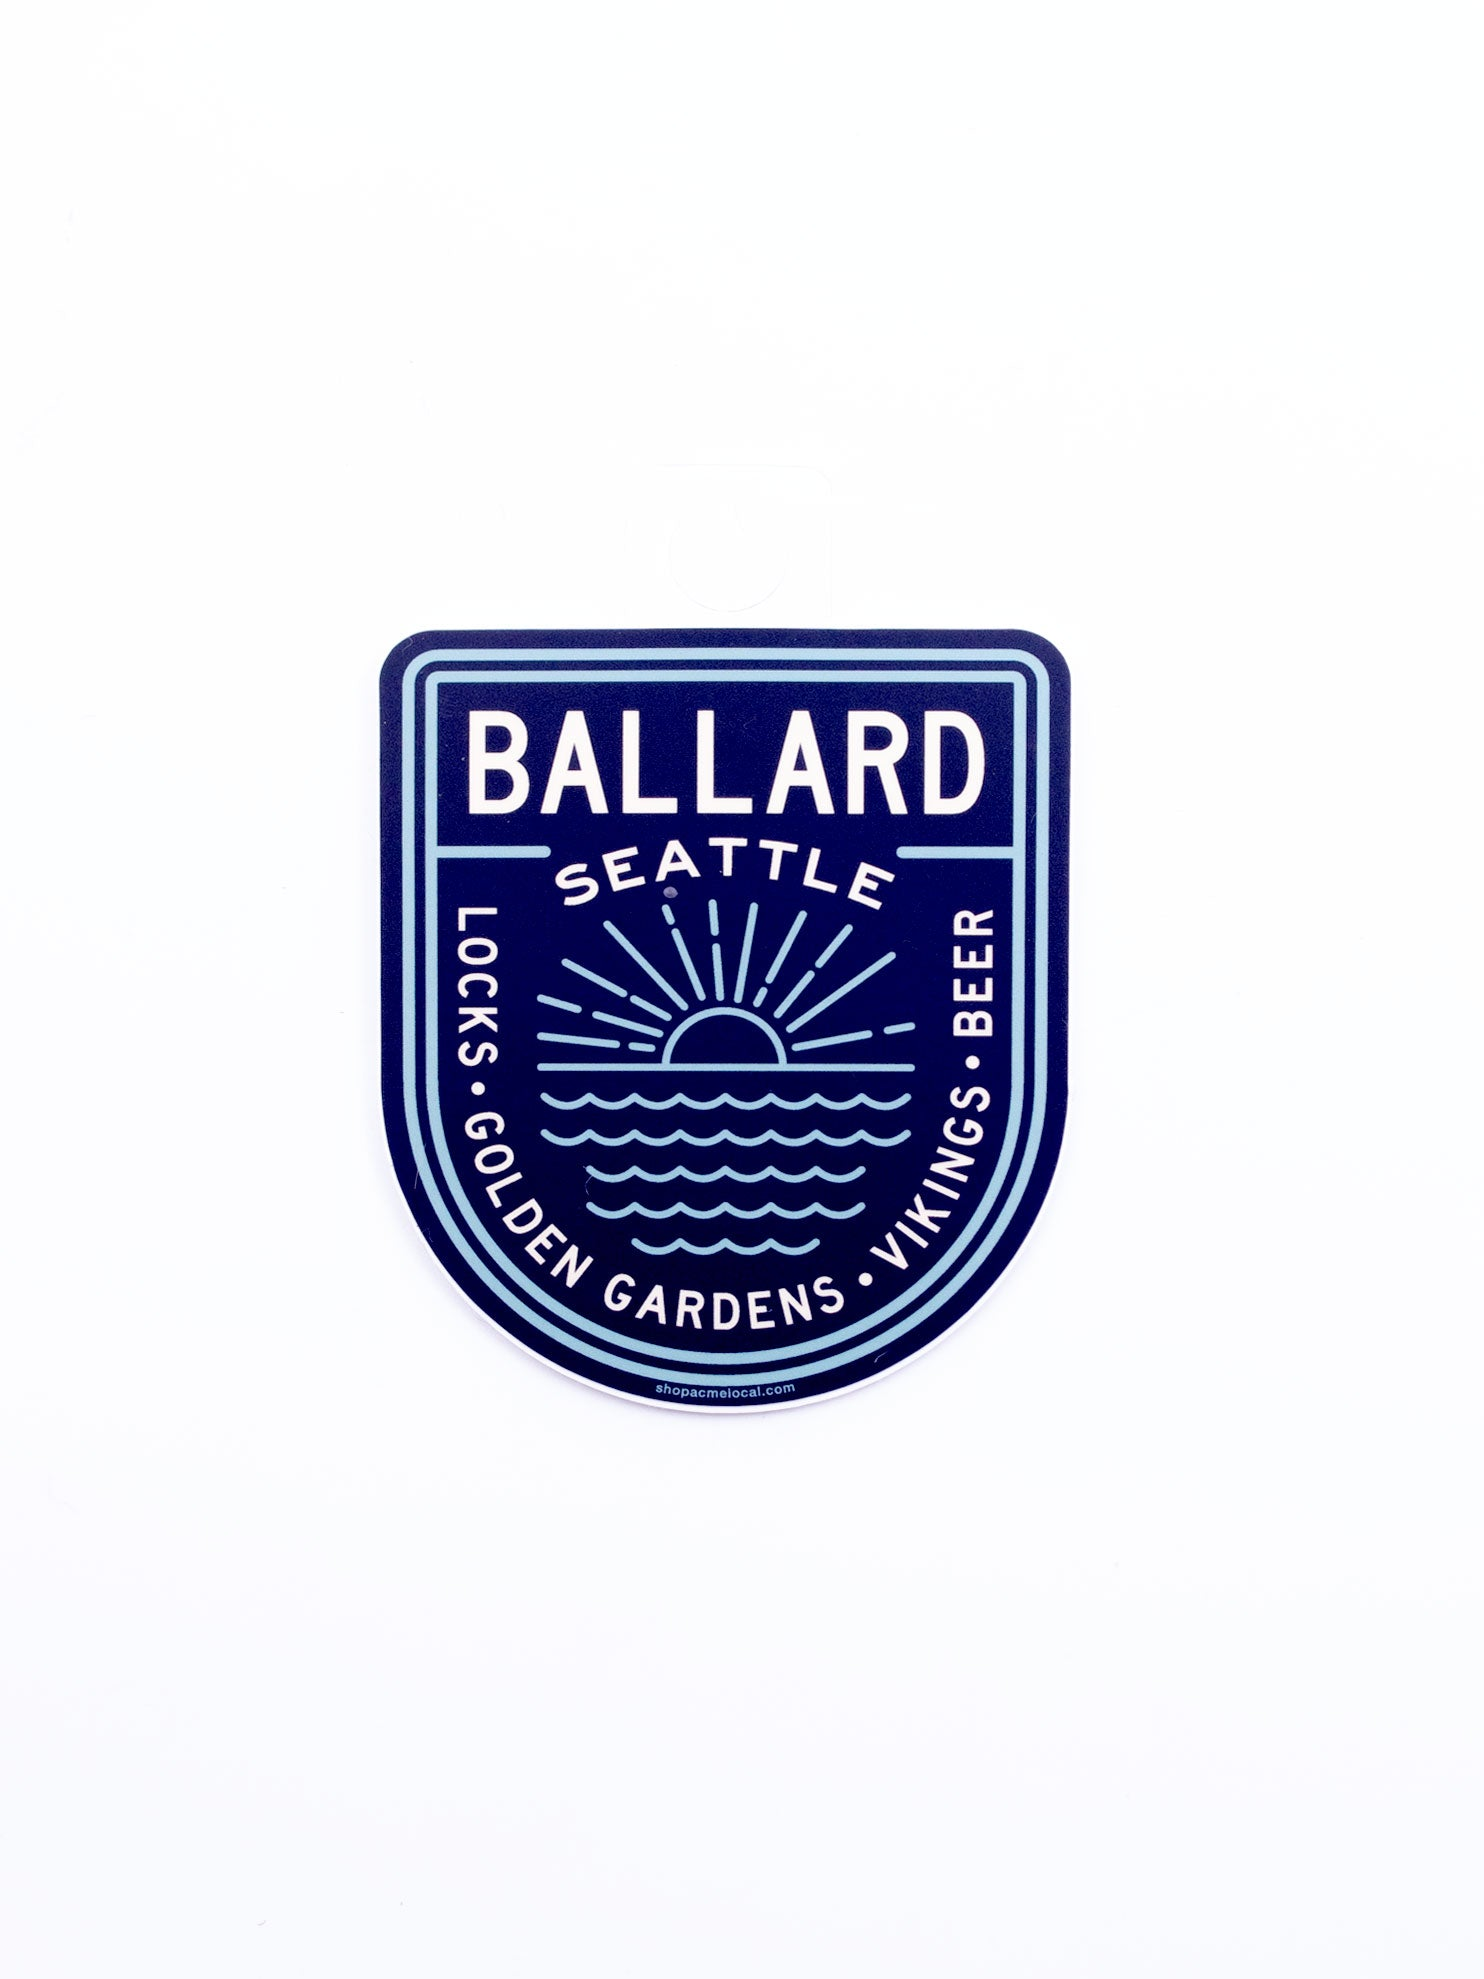 Acme Local Ballard Navy/Teal Badge Sticker